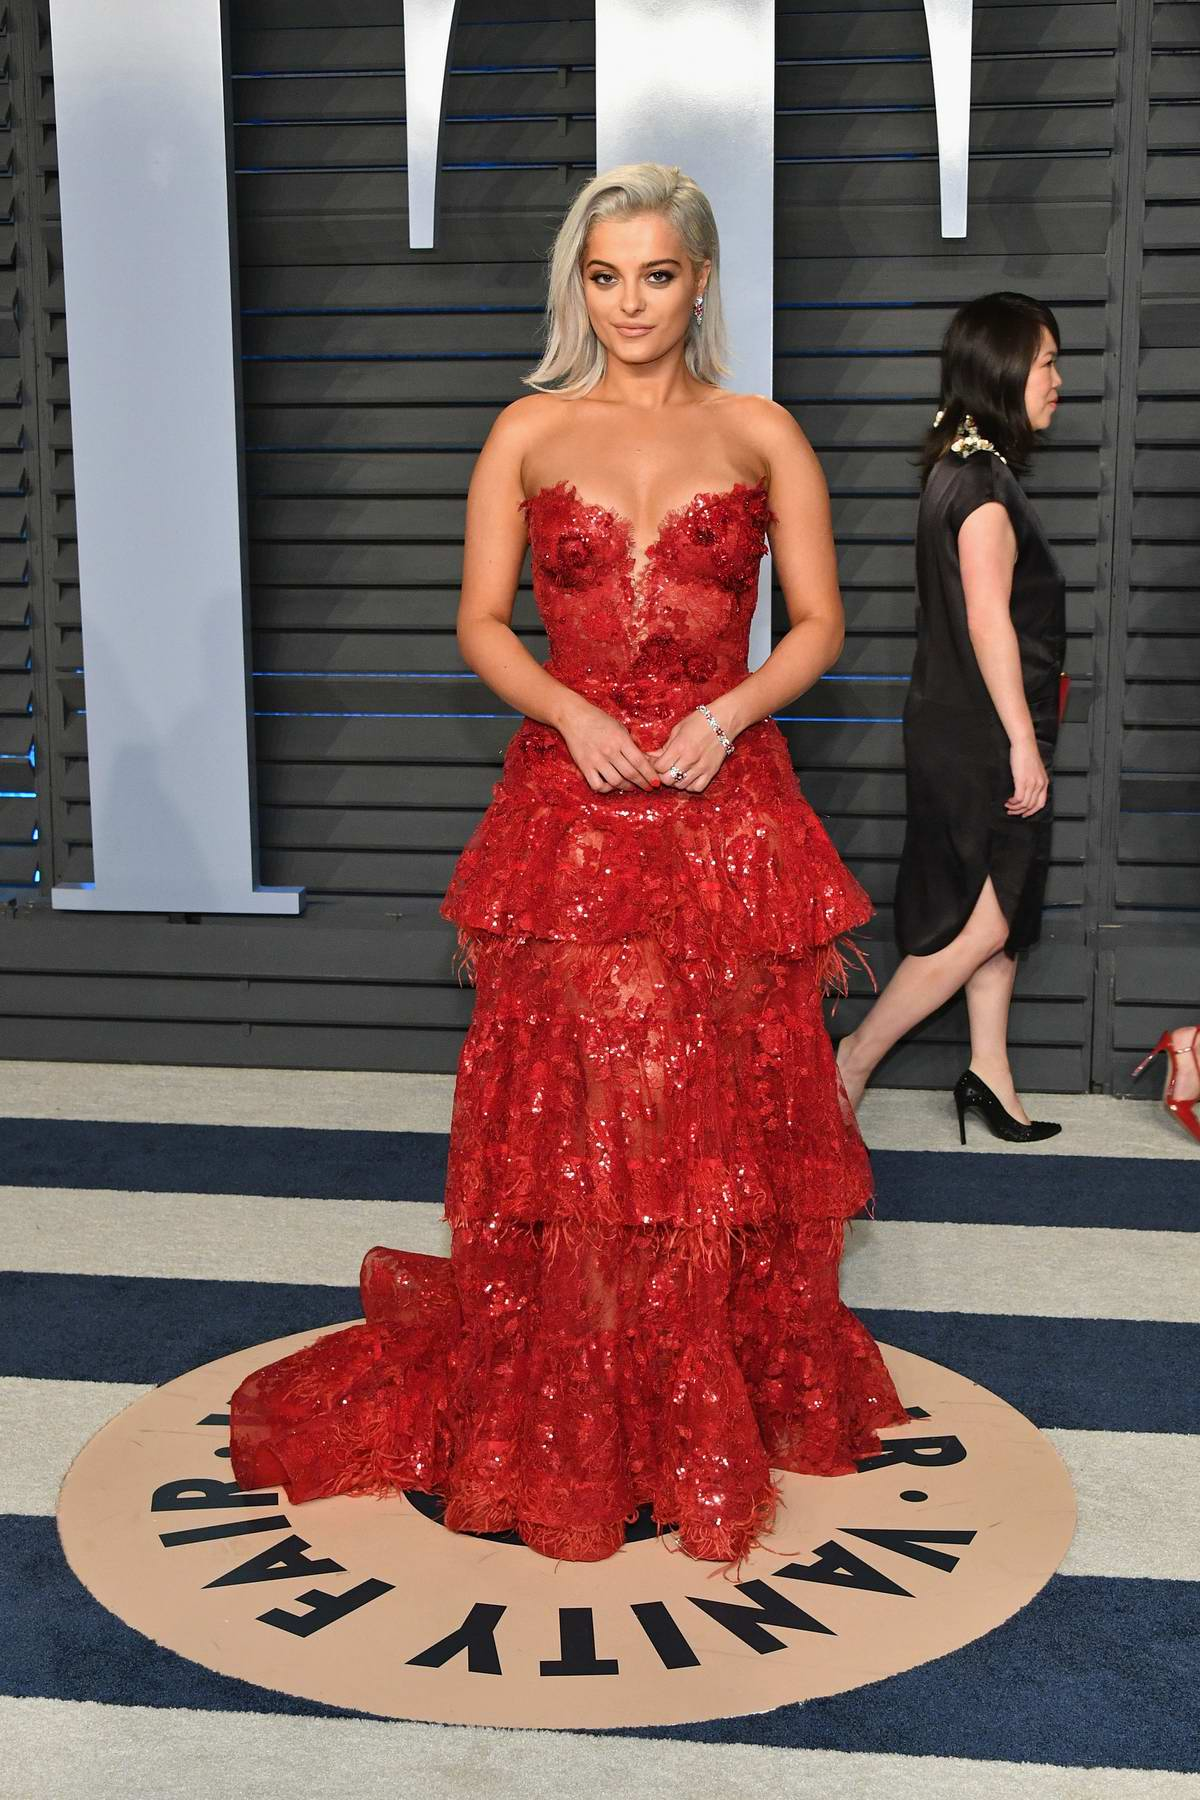 Bebe Rexha attends 2018 Vanity Fair Oscar Party at the Wallis Annenberg Center for the Performing Arts in Beverly Hills, Los Angeles